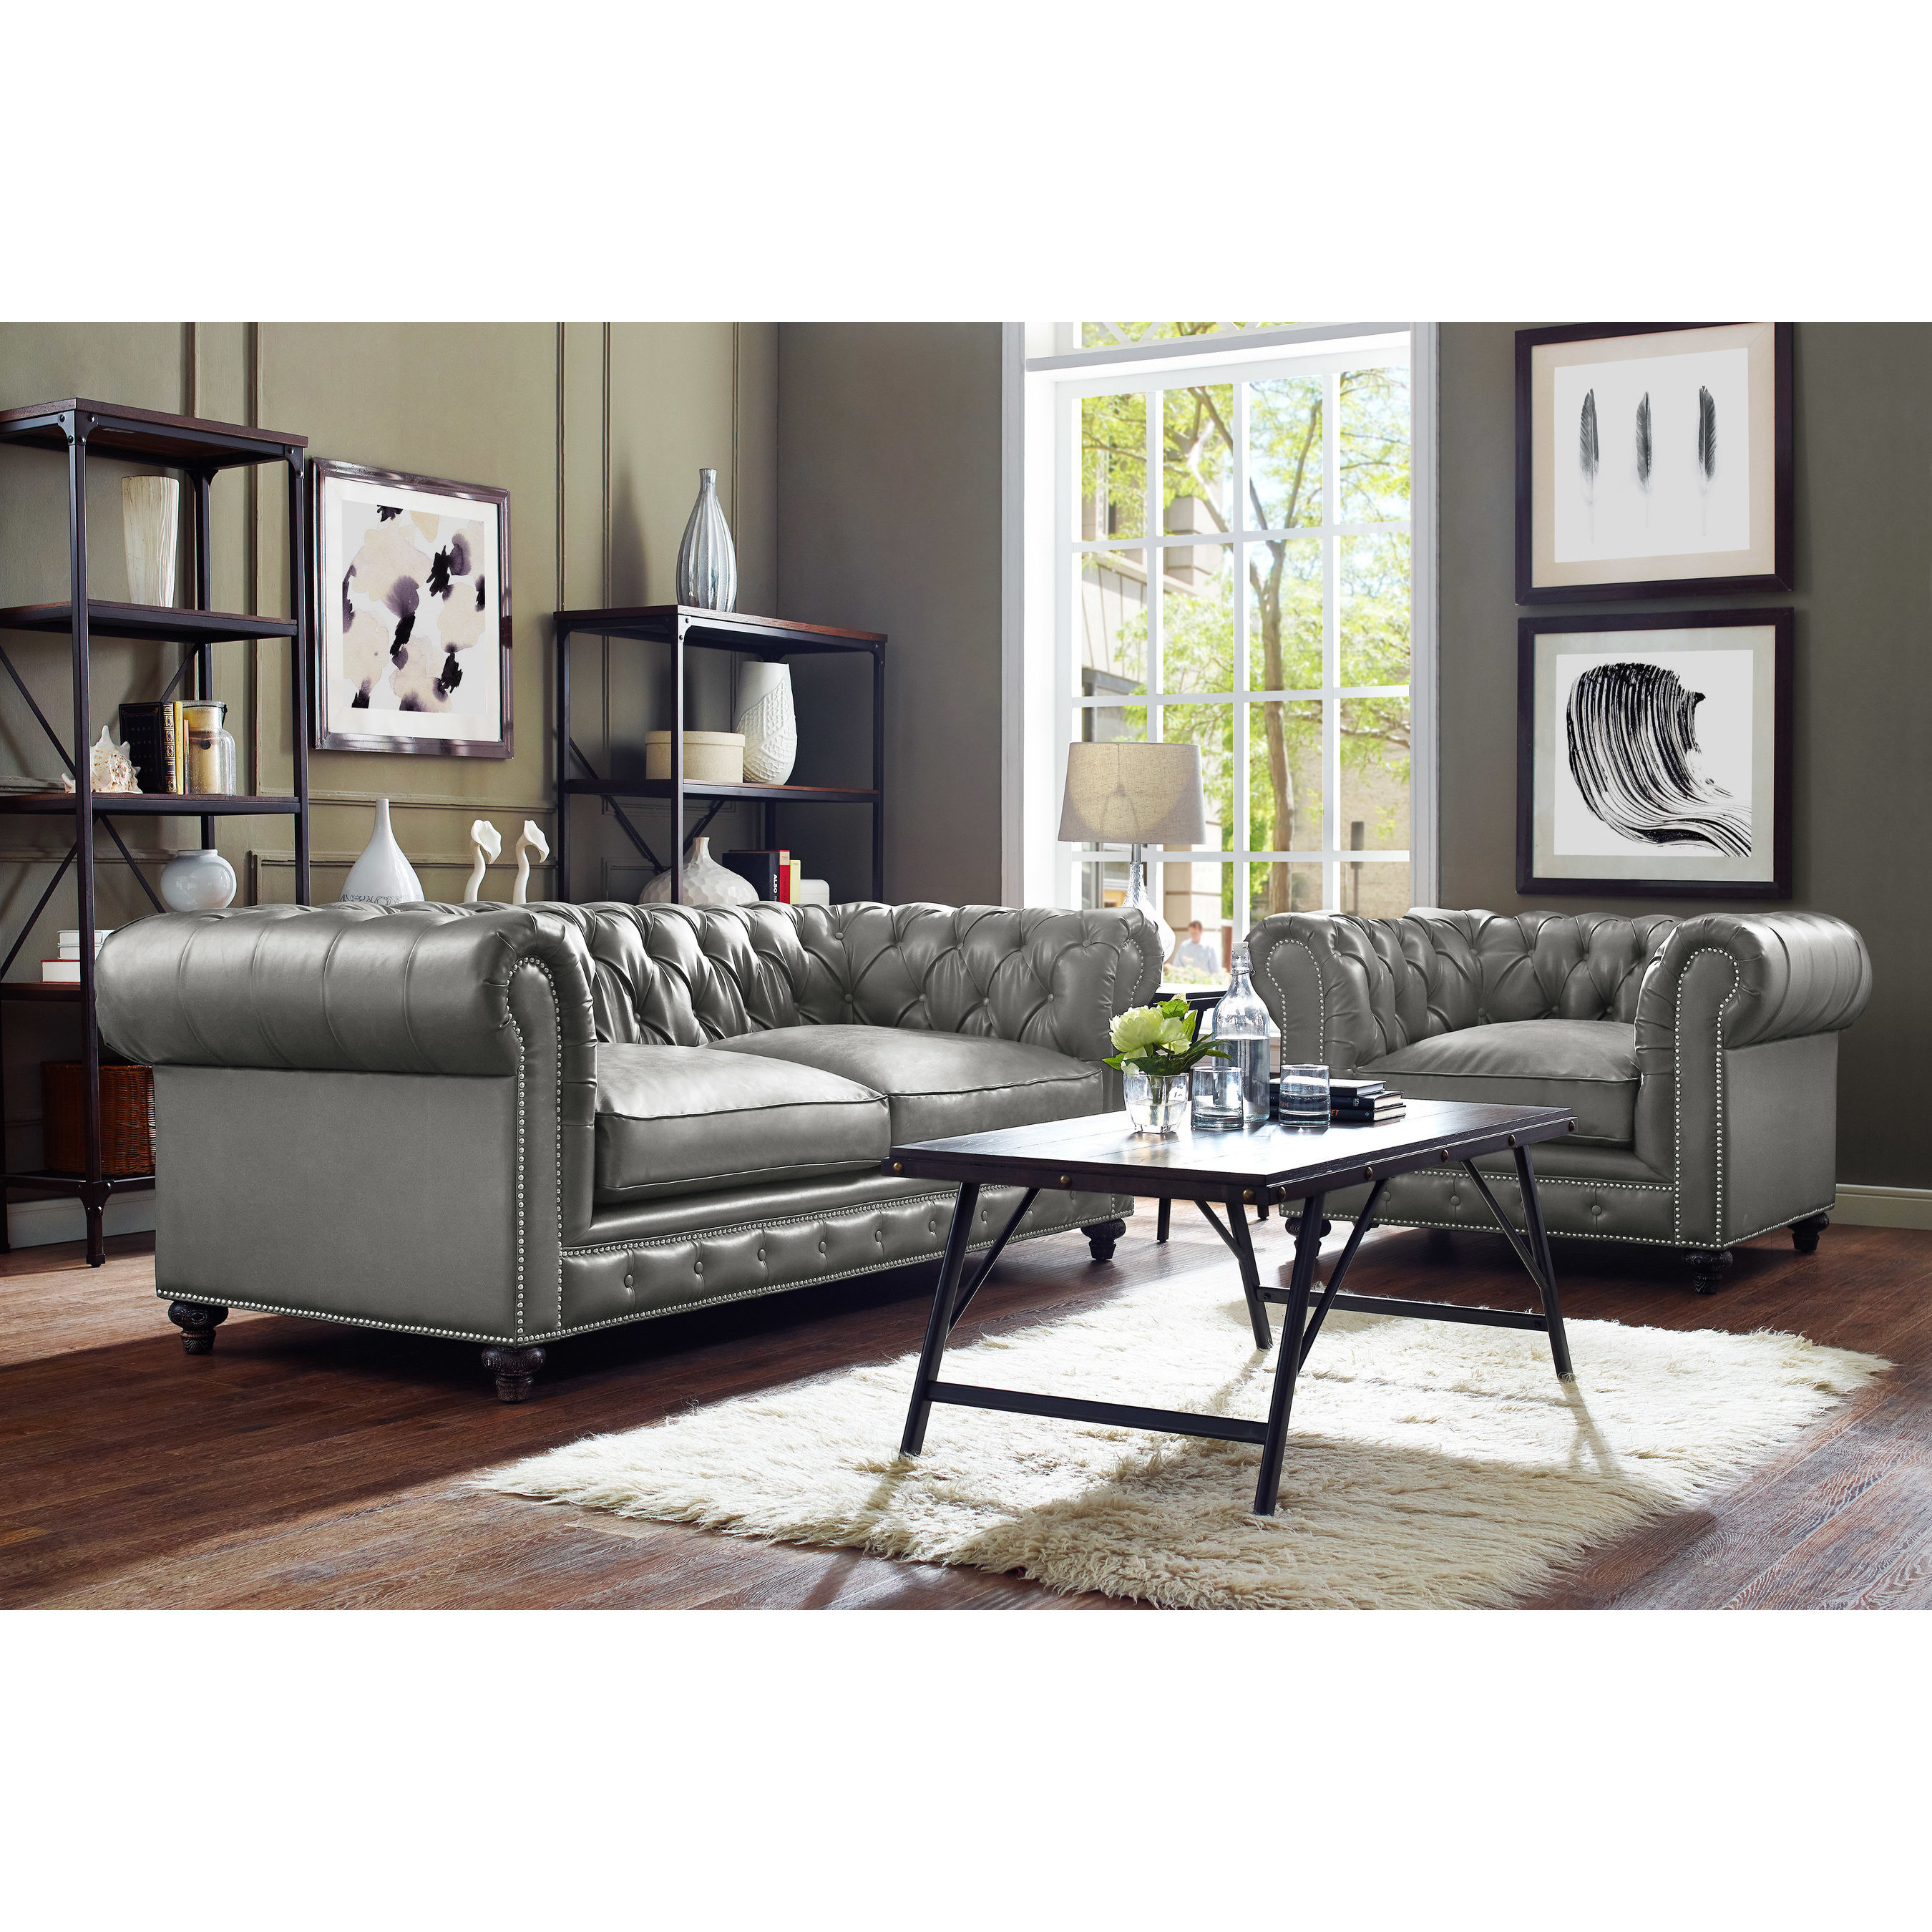 Button tufted and nailhead trimmed leather living room set in grey